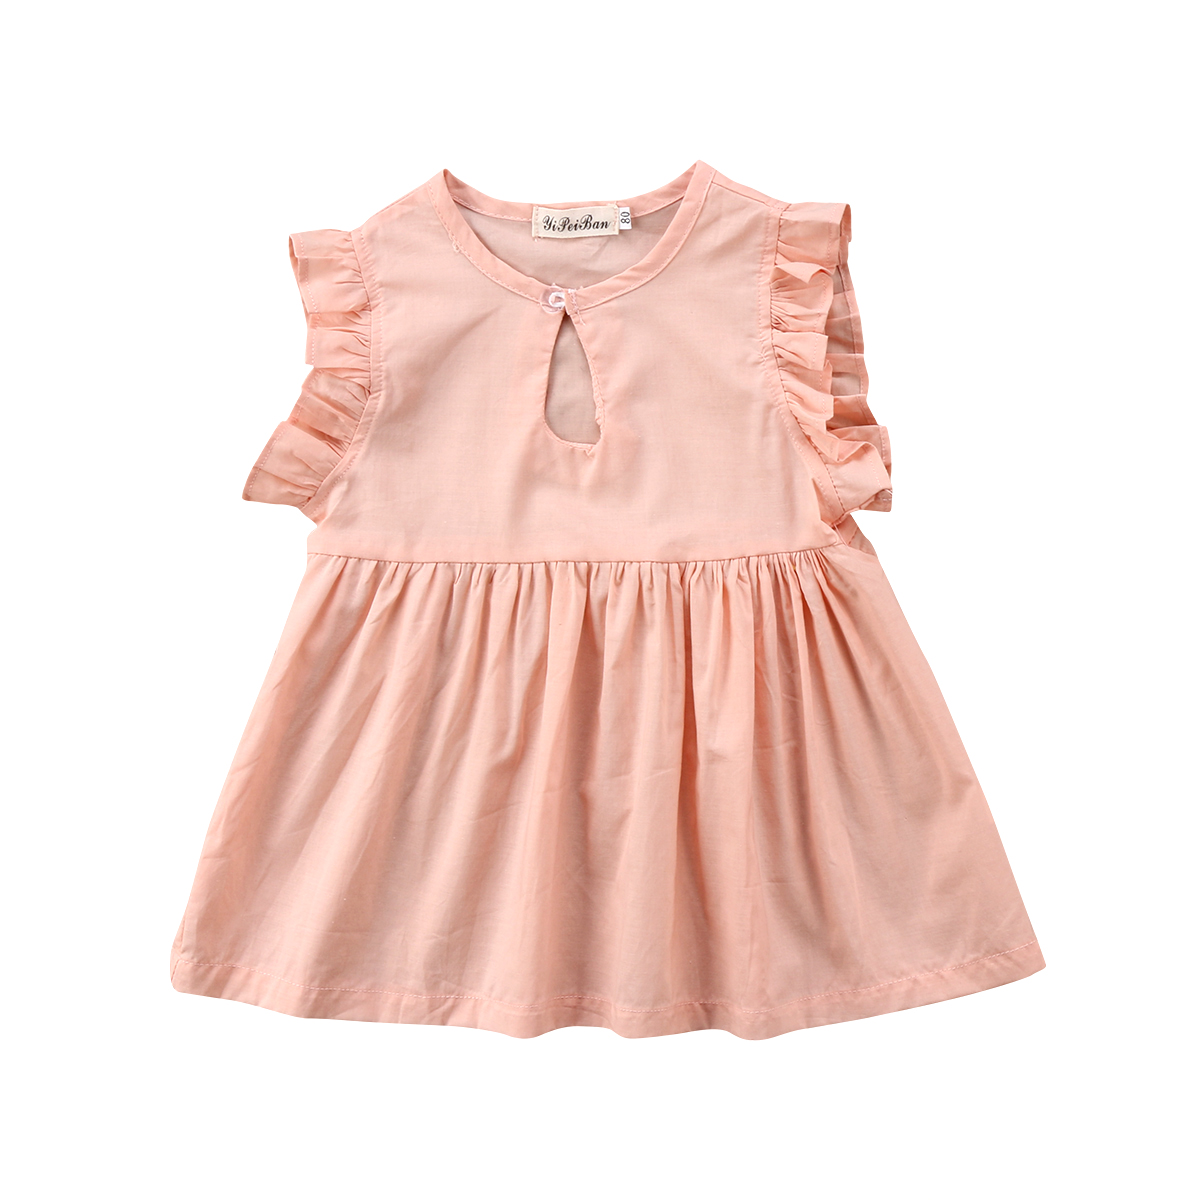 311b3fec0d21 Detail Feedback Questions about 2018 Toddler Kid Baby Girl Pink Soft  Sundress Flying Sleeves Outfits Jumpsuit Sweet Dresses Summer Clothing on  ...